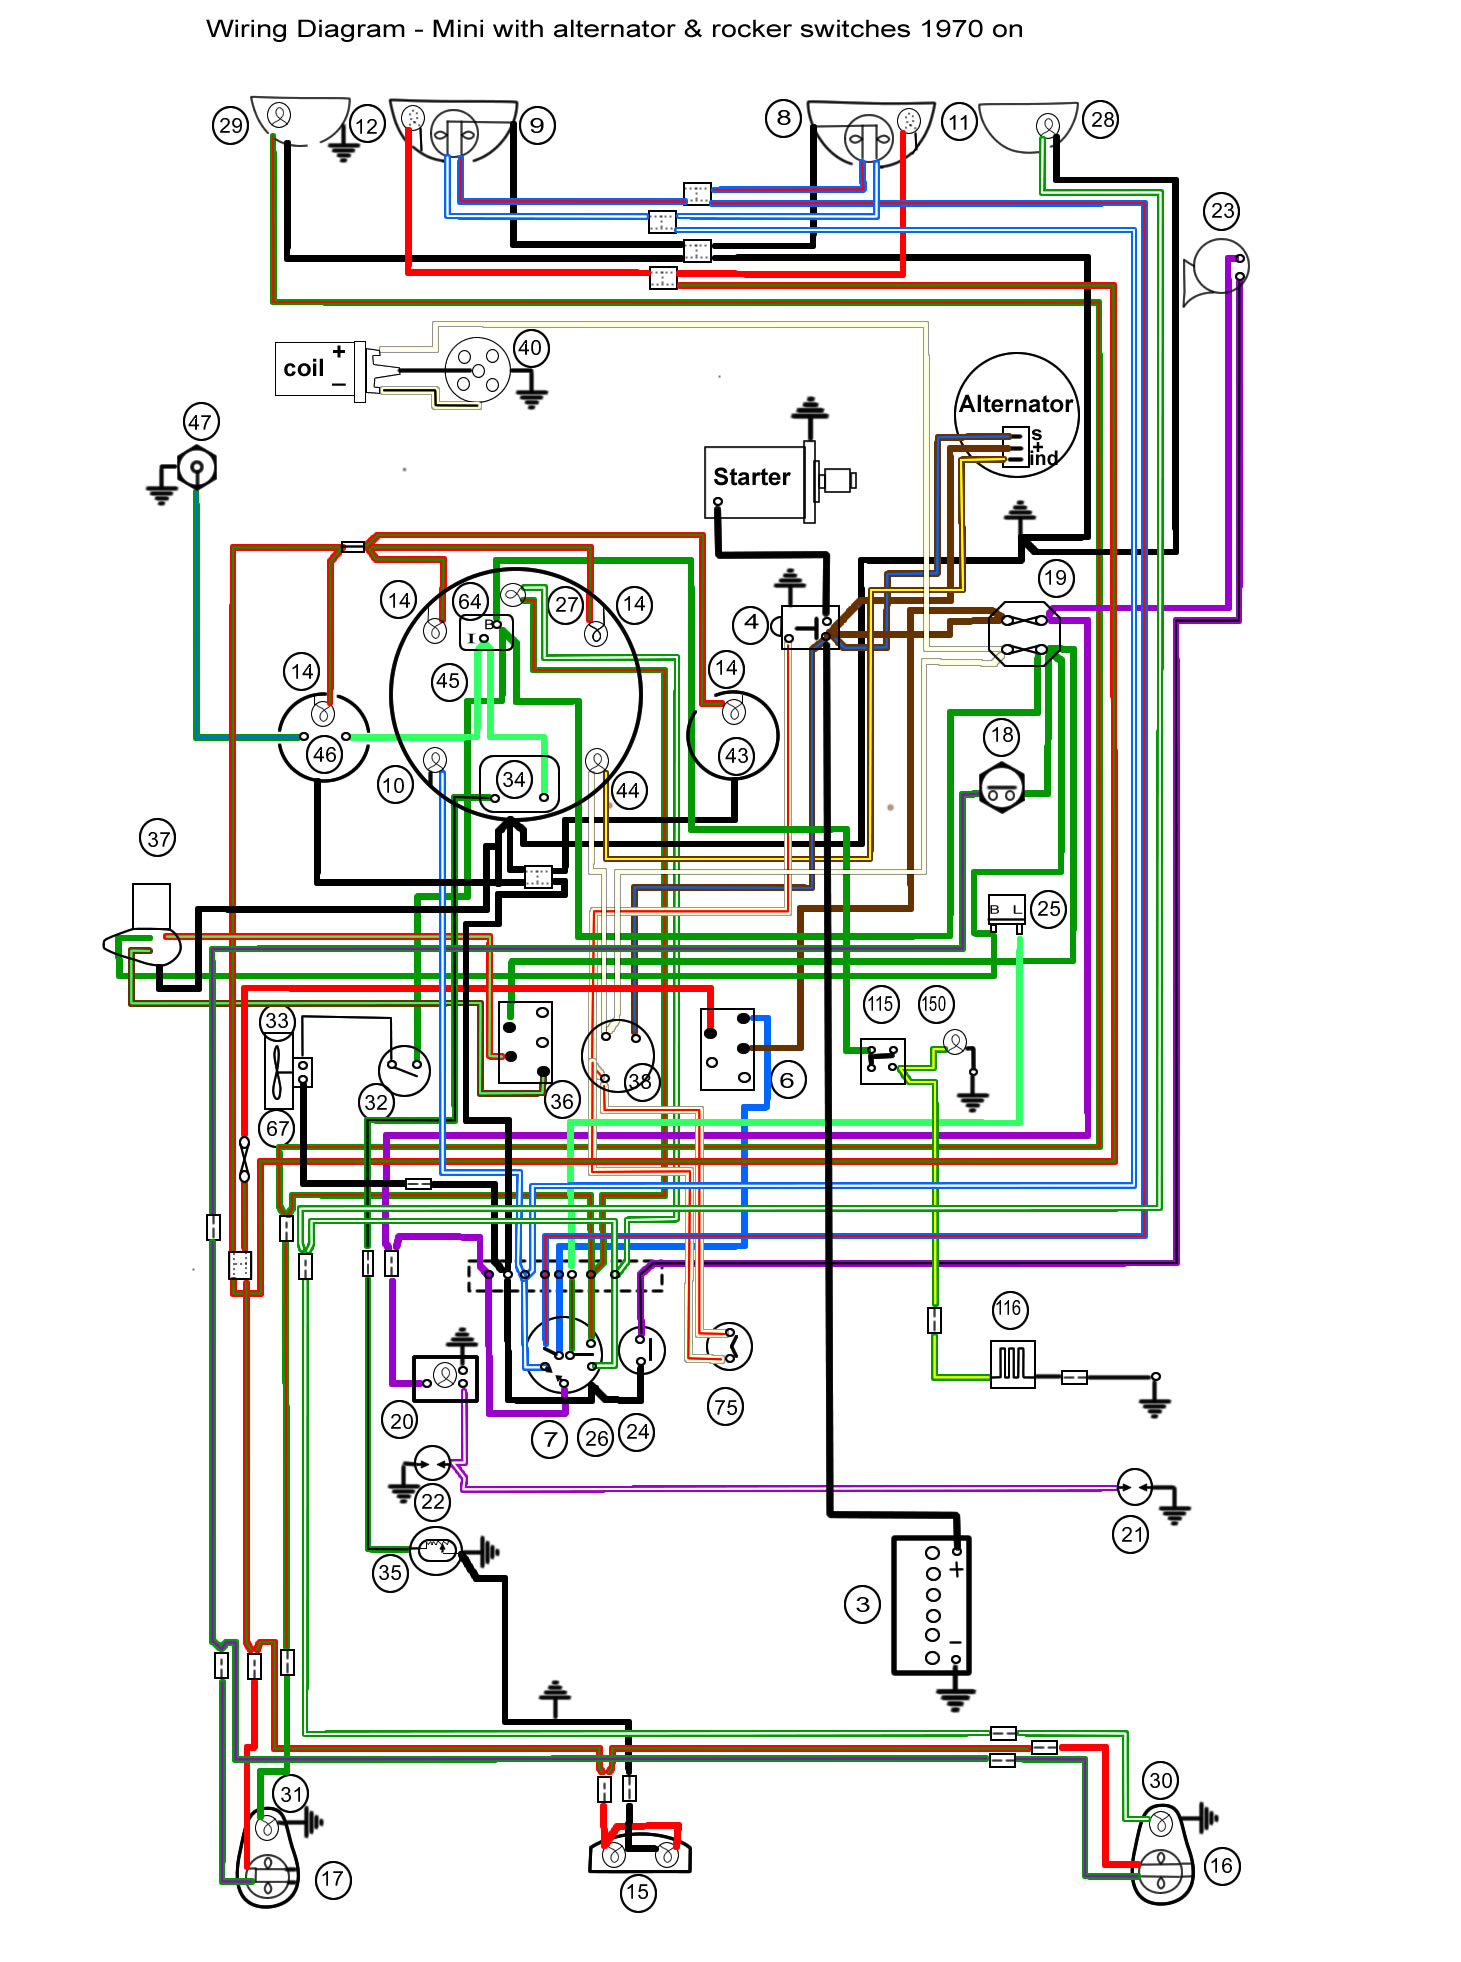 Mini Cooper Lights Wiring Diagram Auto Electrical Cruzin Cooler Minifinity The Classic Forum And Resource